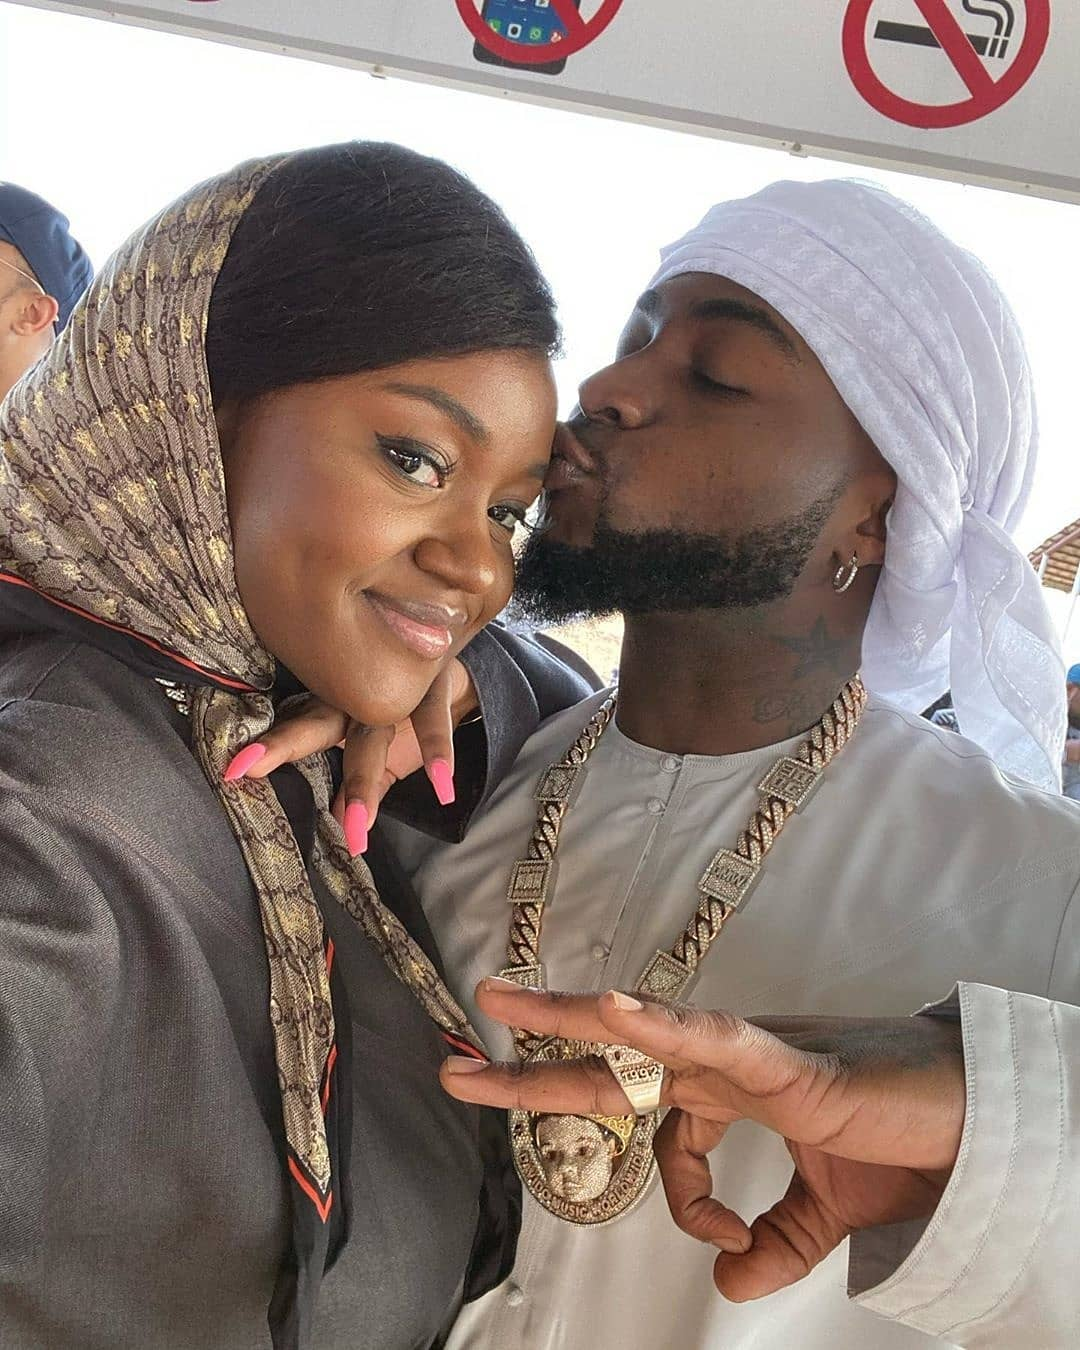 Davido and Chioma dressed in Arabia outfit